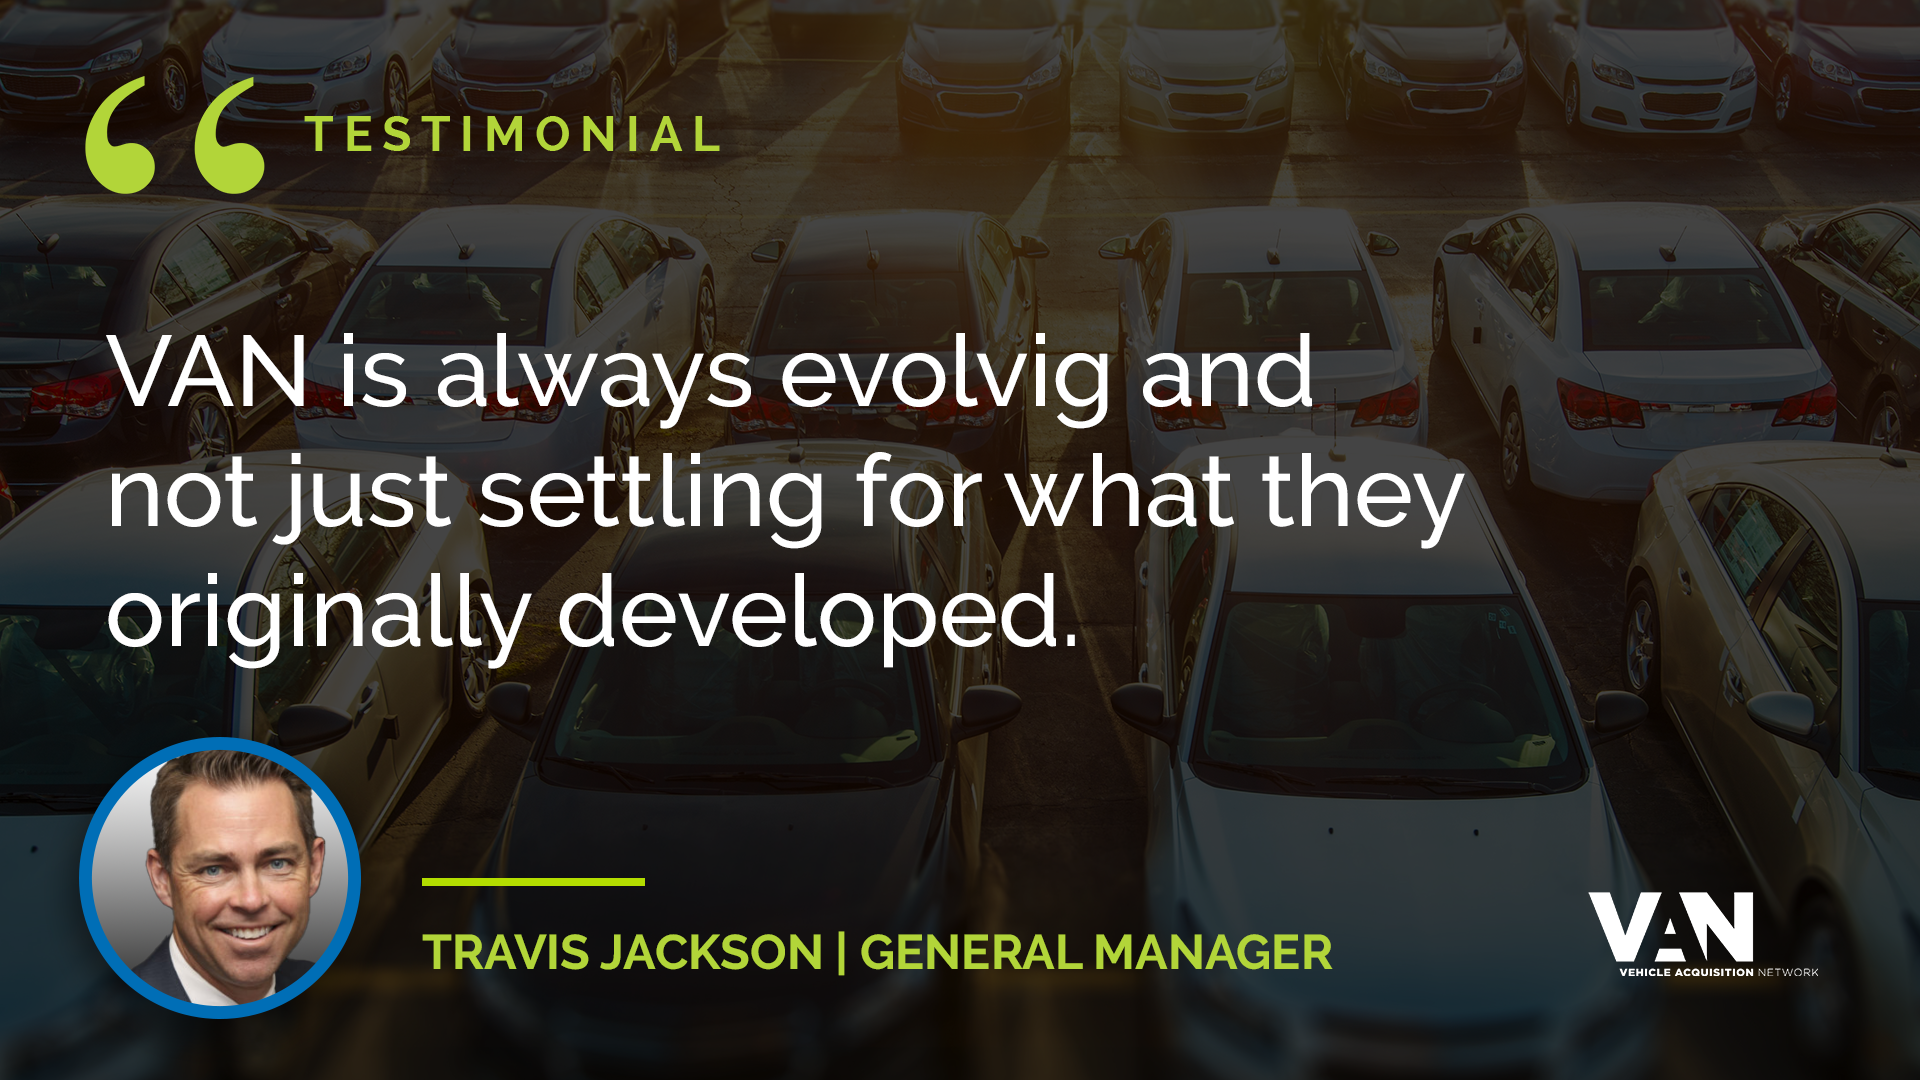 Travis Jackson, General Manager, Toyota of Naperville